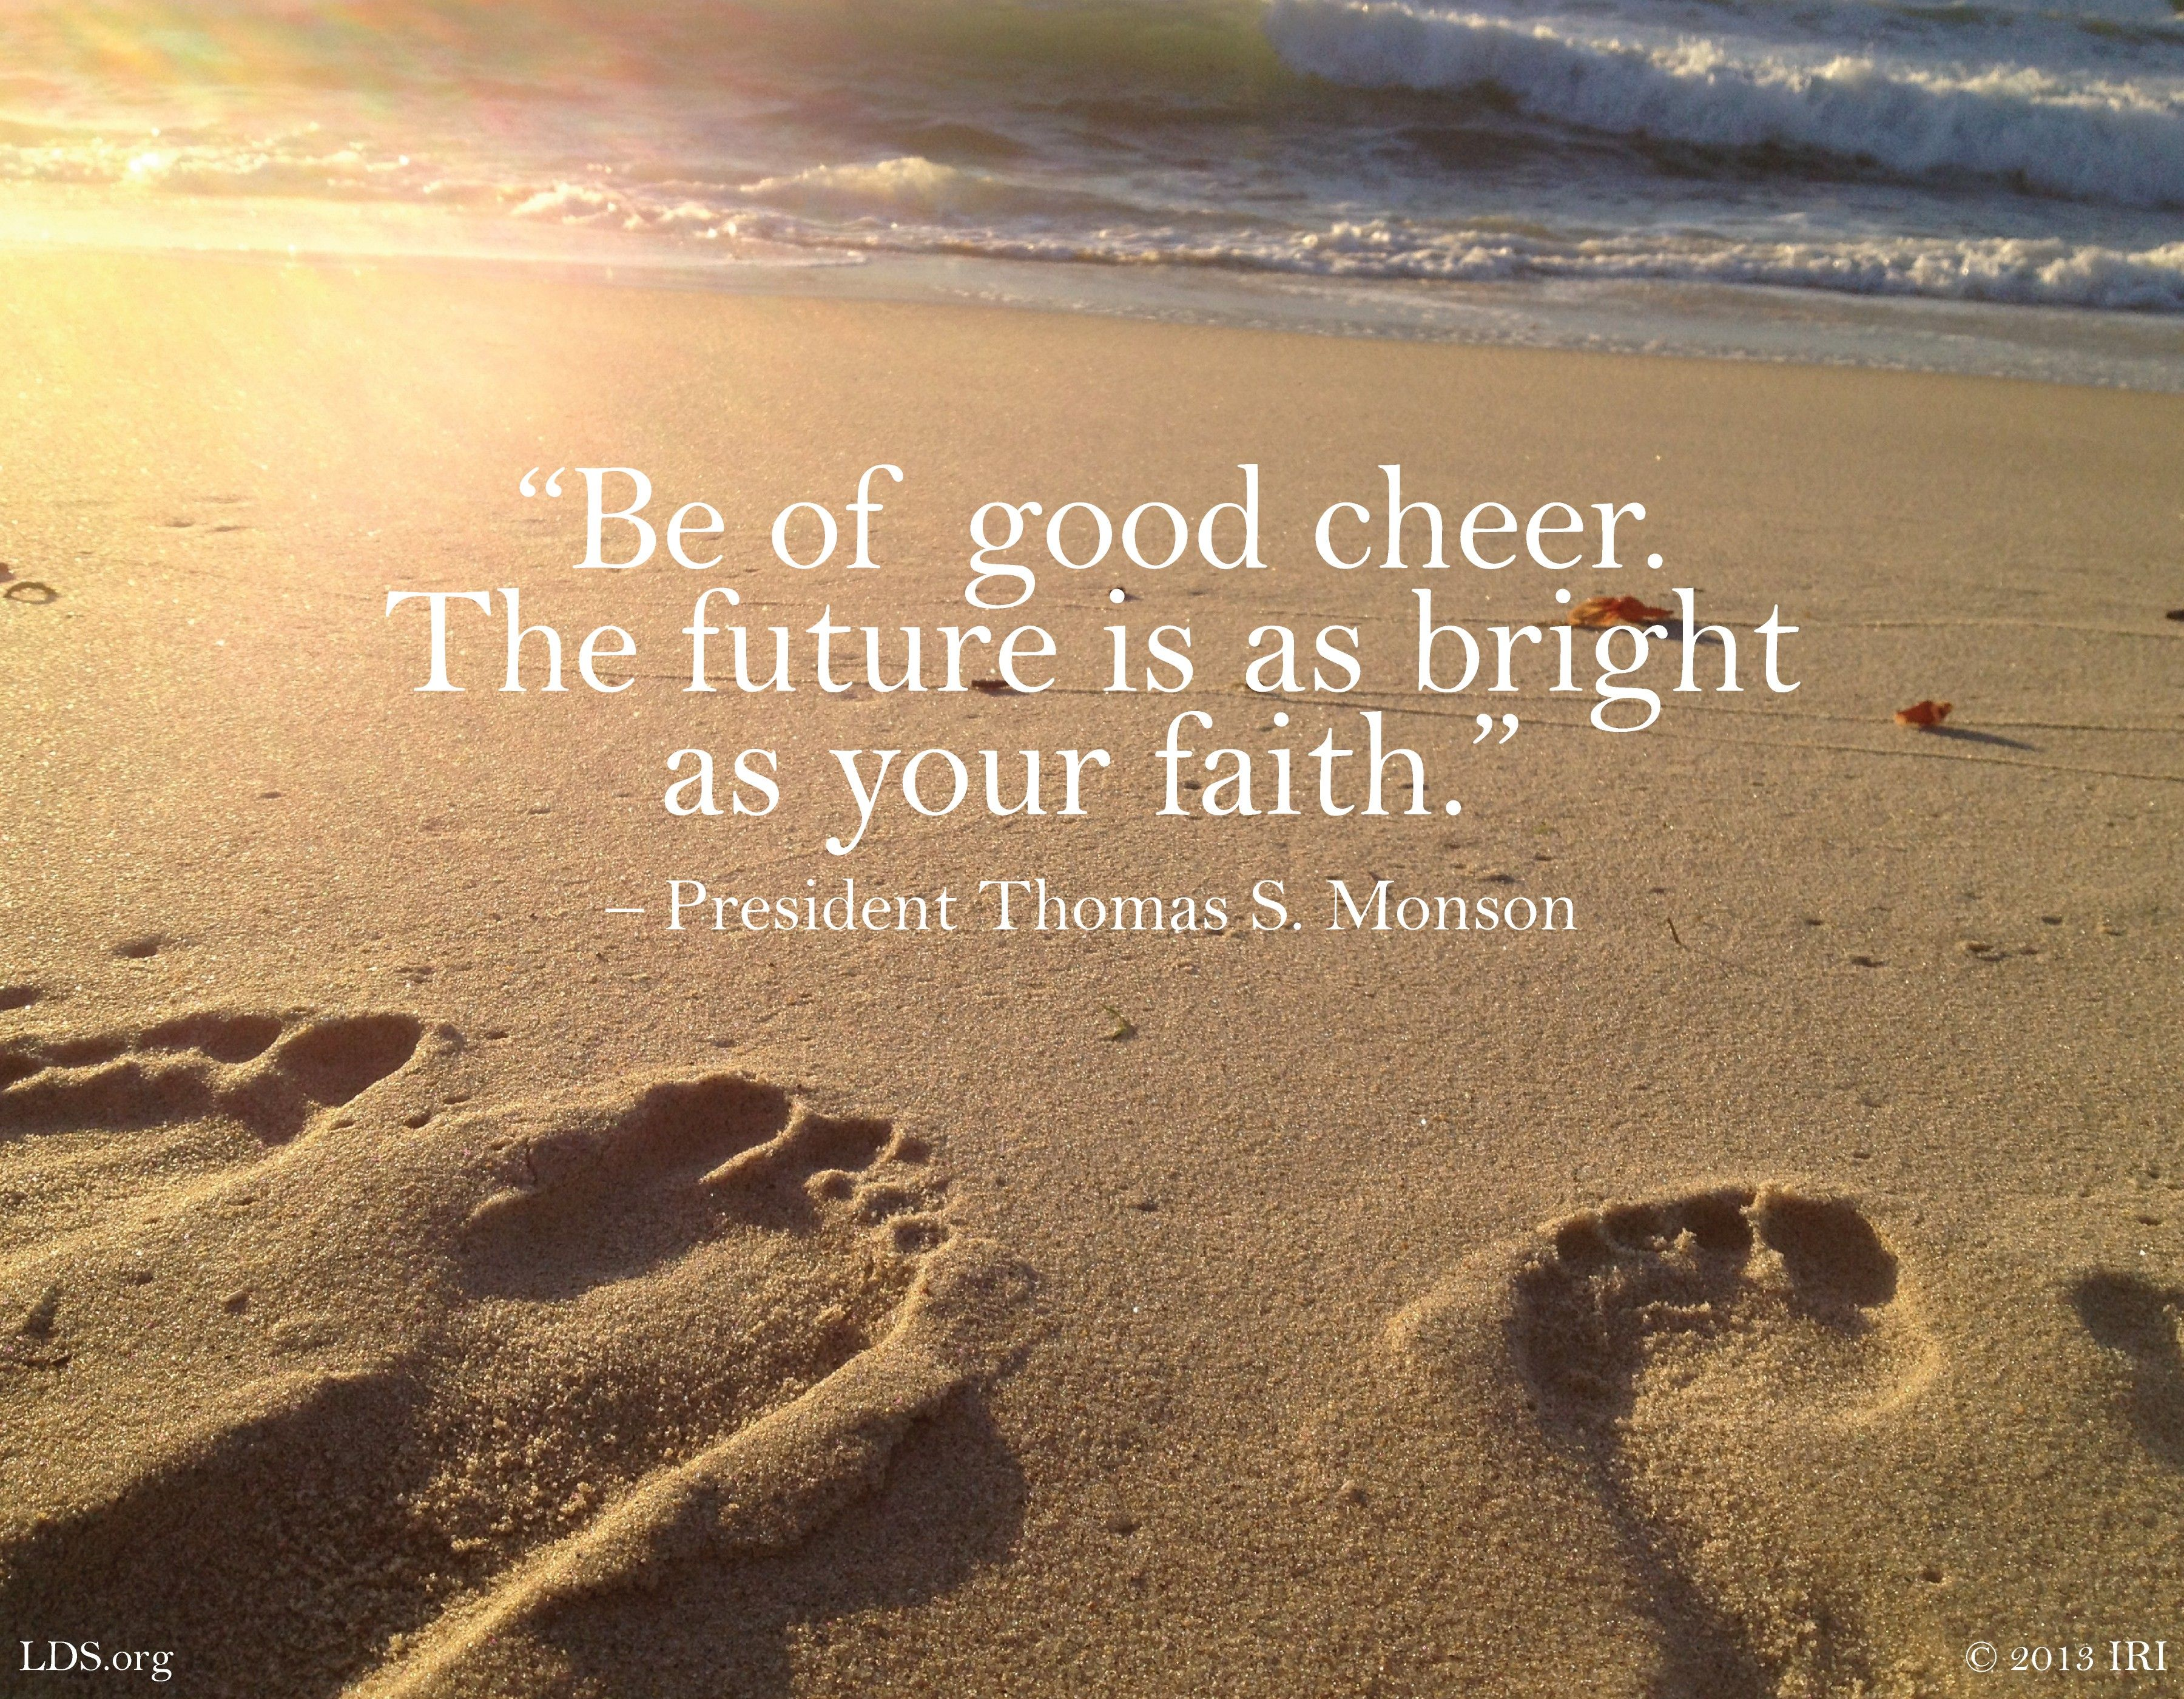 """""""Be of good cheer. The future is as bright as your faith.""""—President Thomas S. Monson, """"Be of Good Cheer"""""""